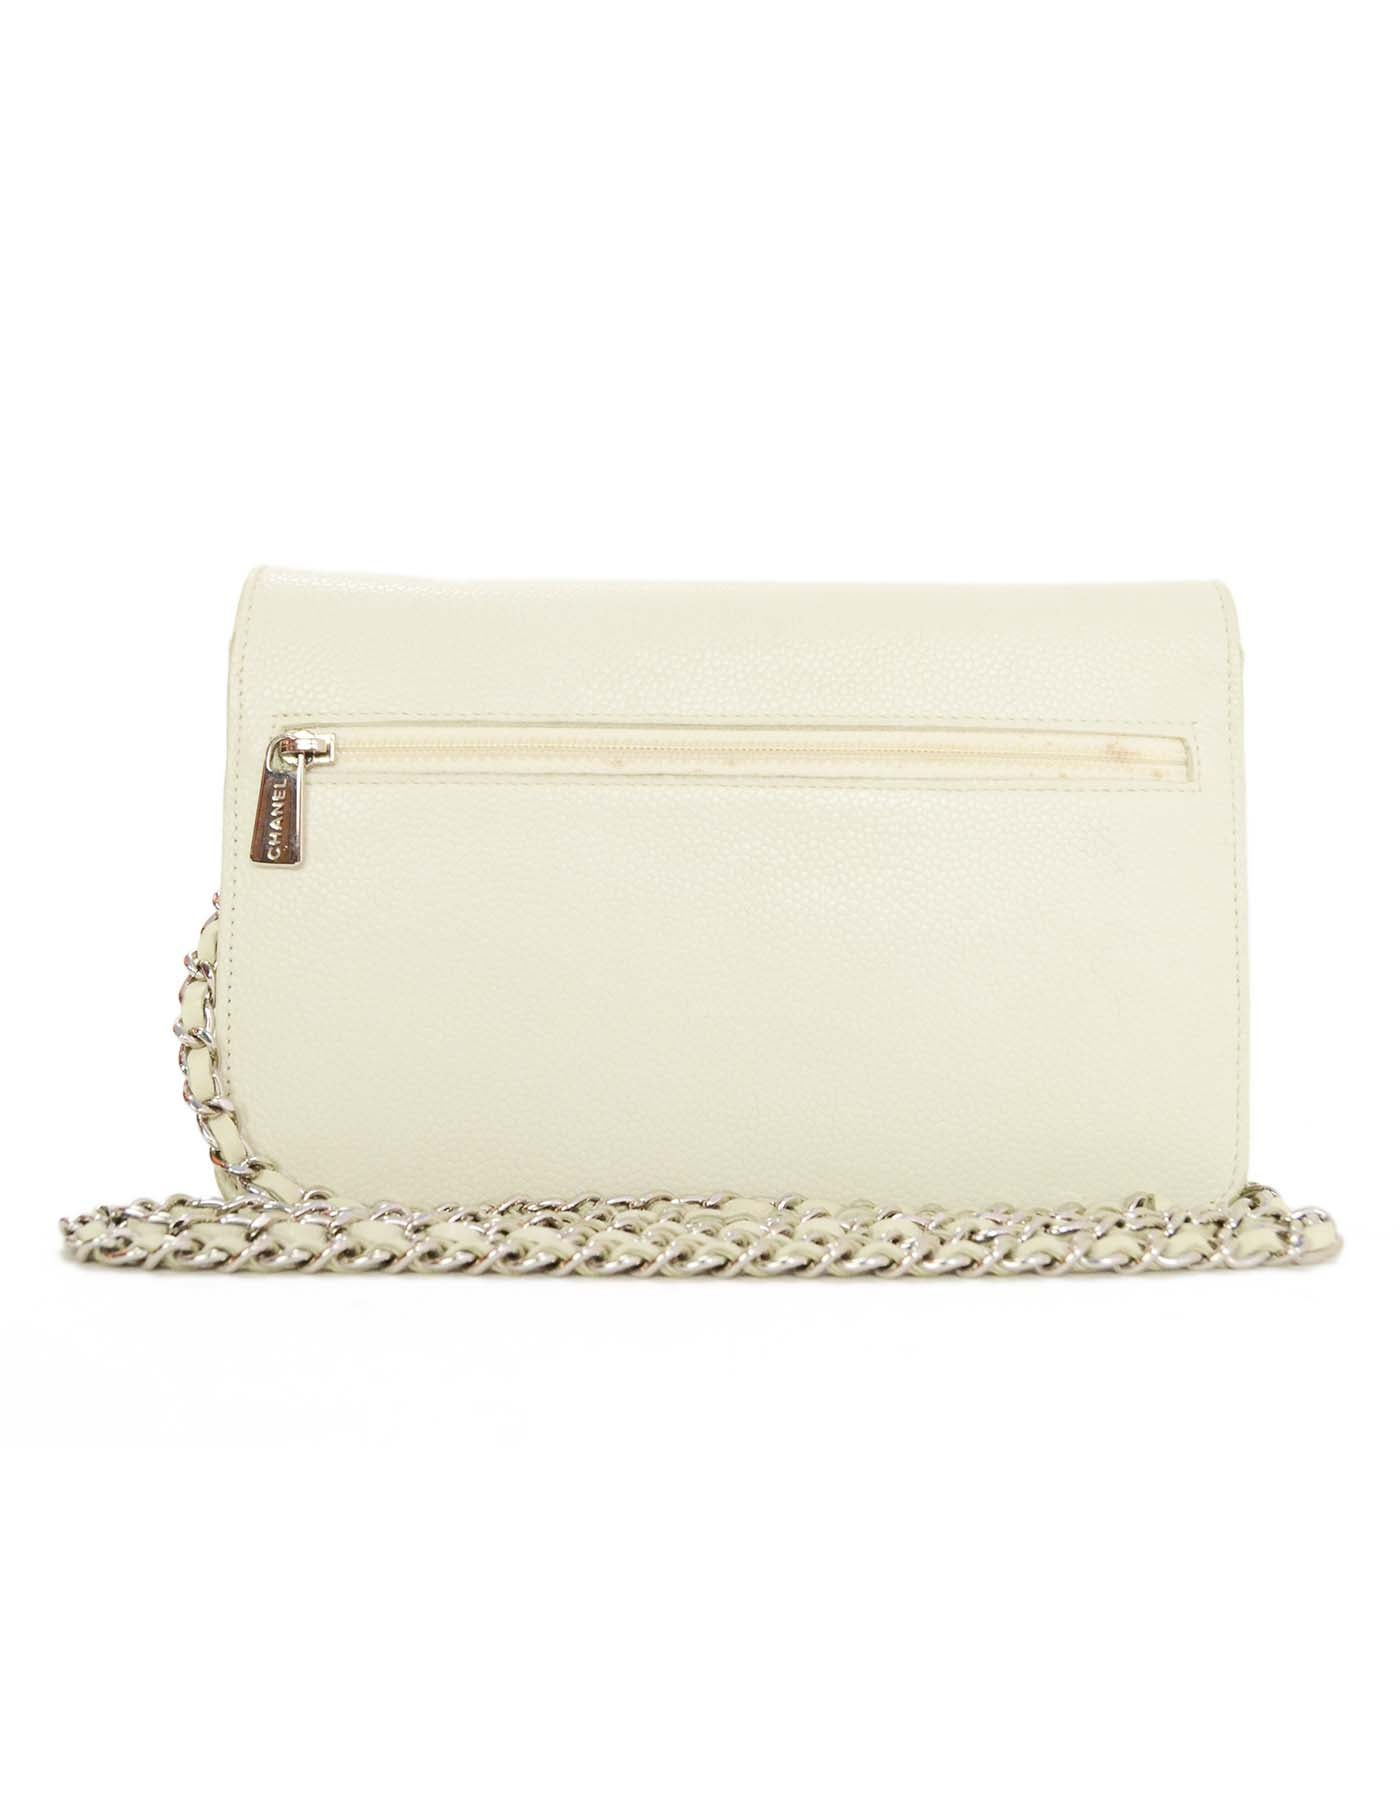 f46409ca5968 Chanel Ivory Caviar Timeless Wallet On Chain WOC Crossbody Bag SHW For Sale  at 1stdibs